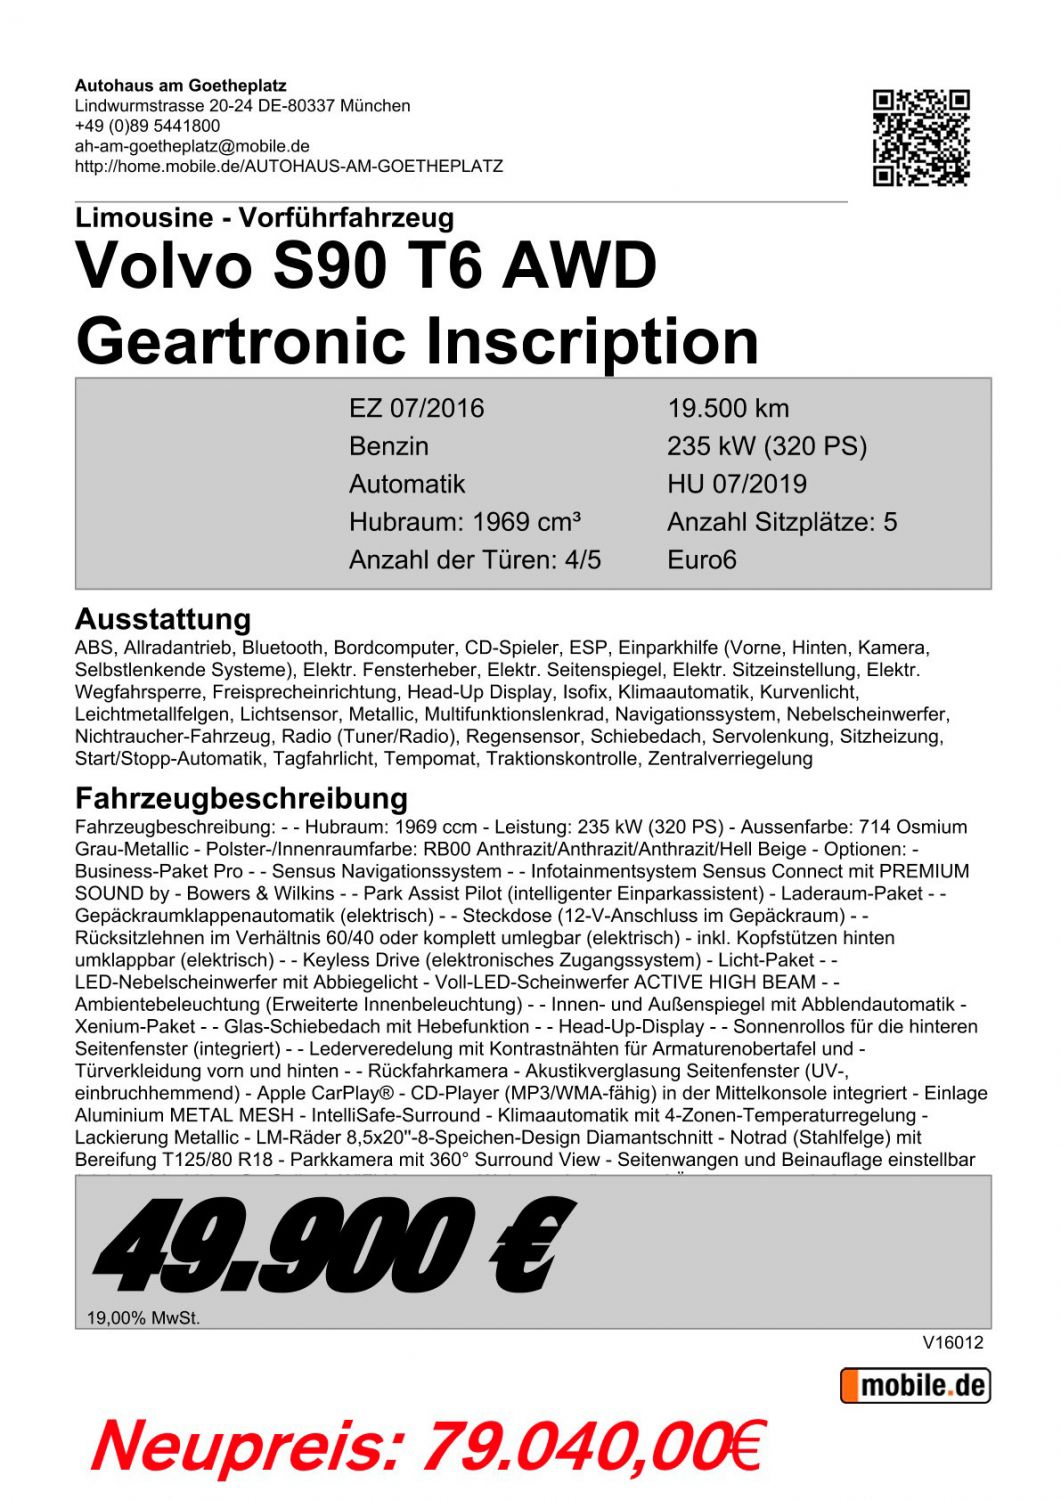 Volvo-S90-T6-AWD-Geartronic-Inscription.jpg